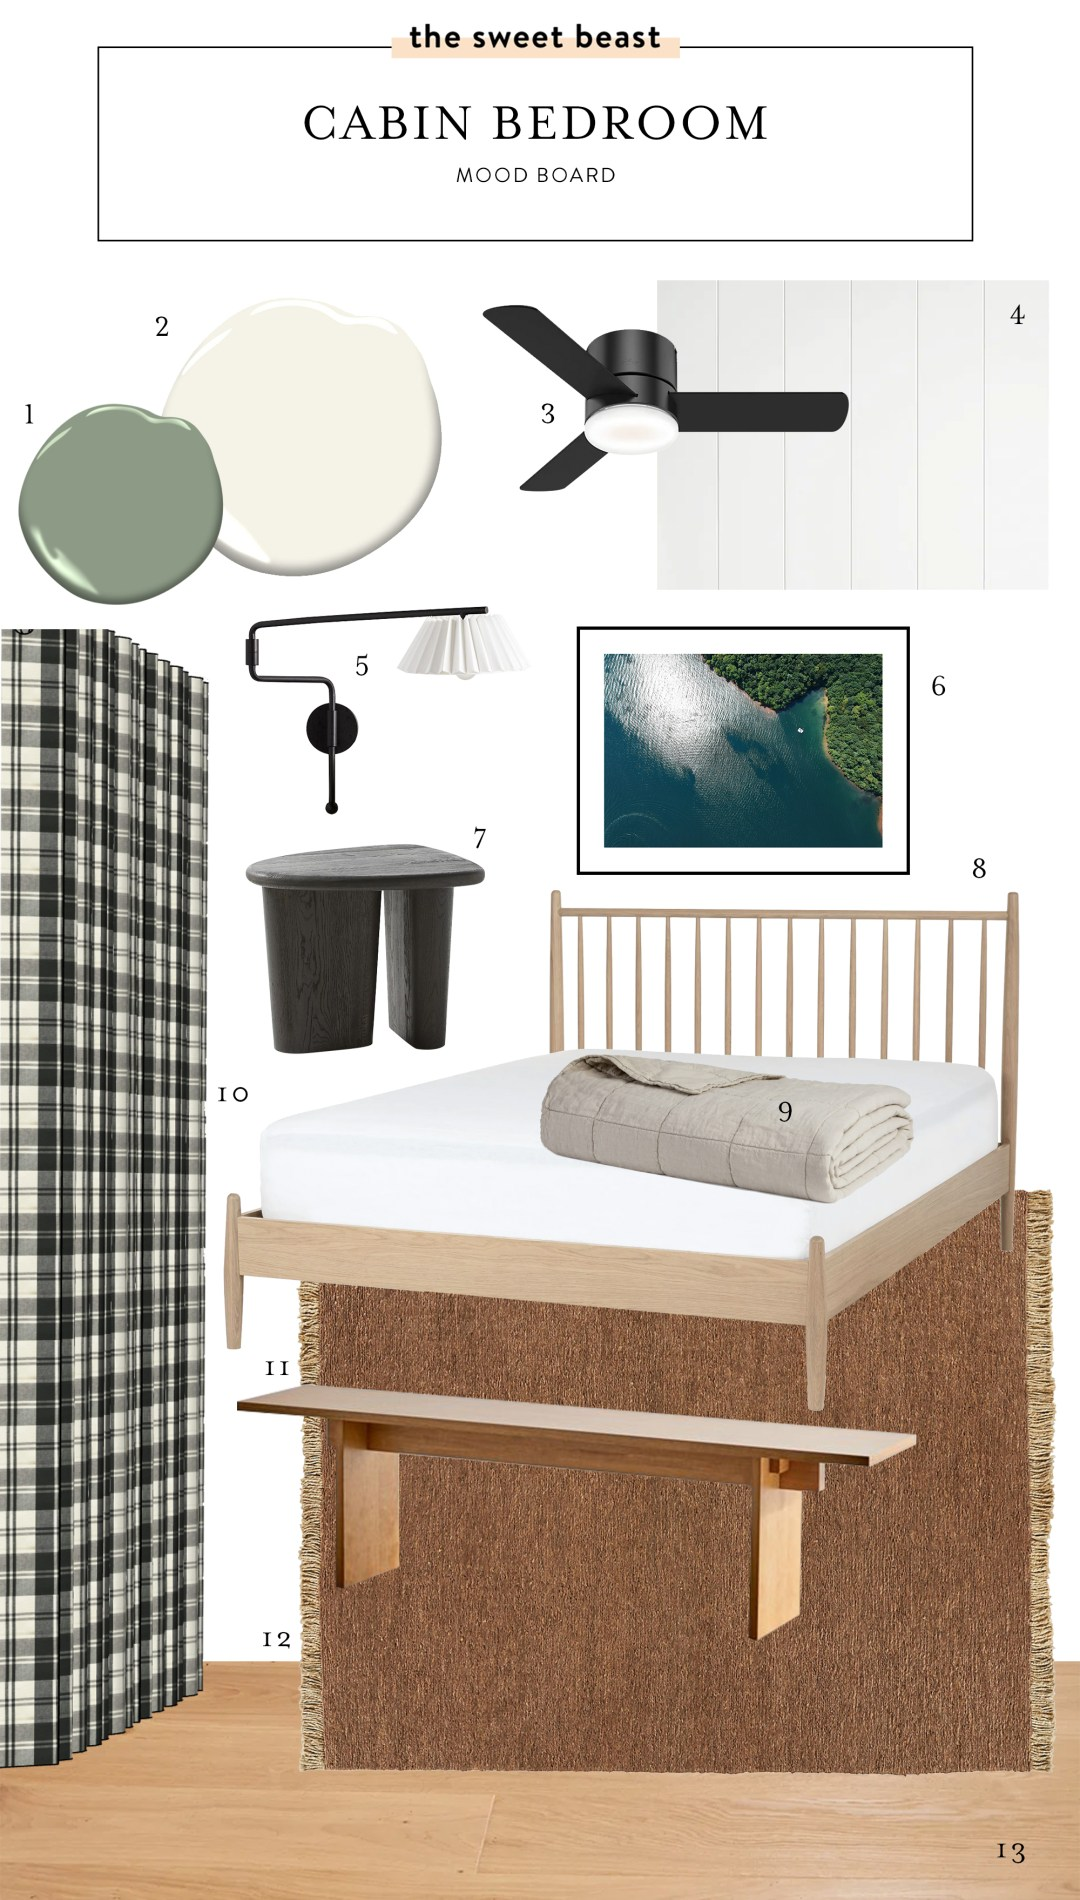 Cabin Bedroom Mood Board